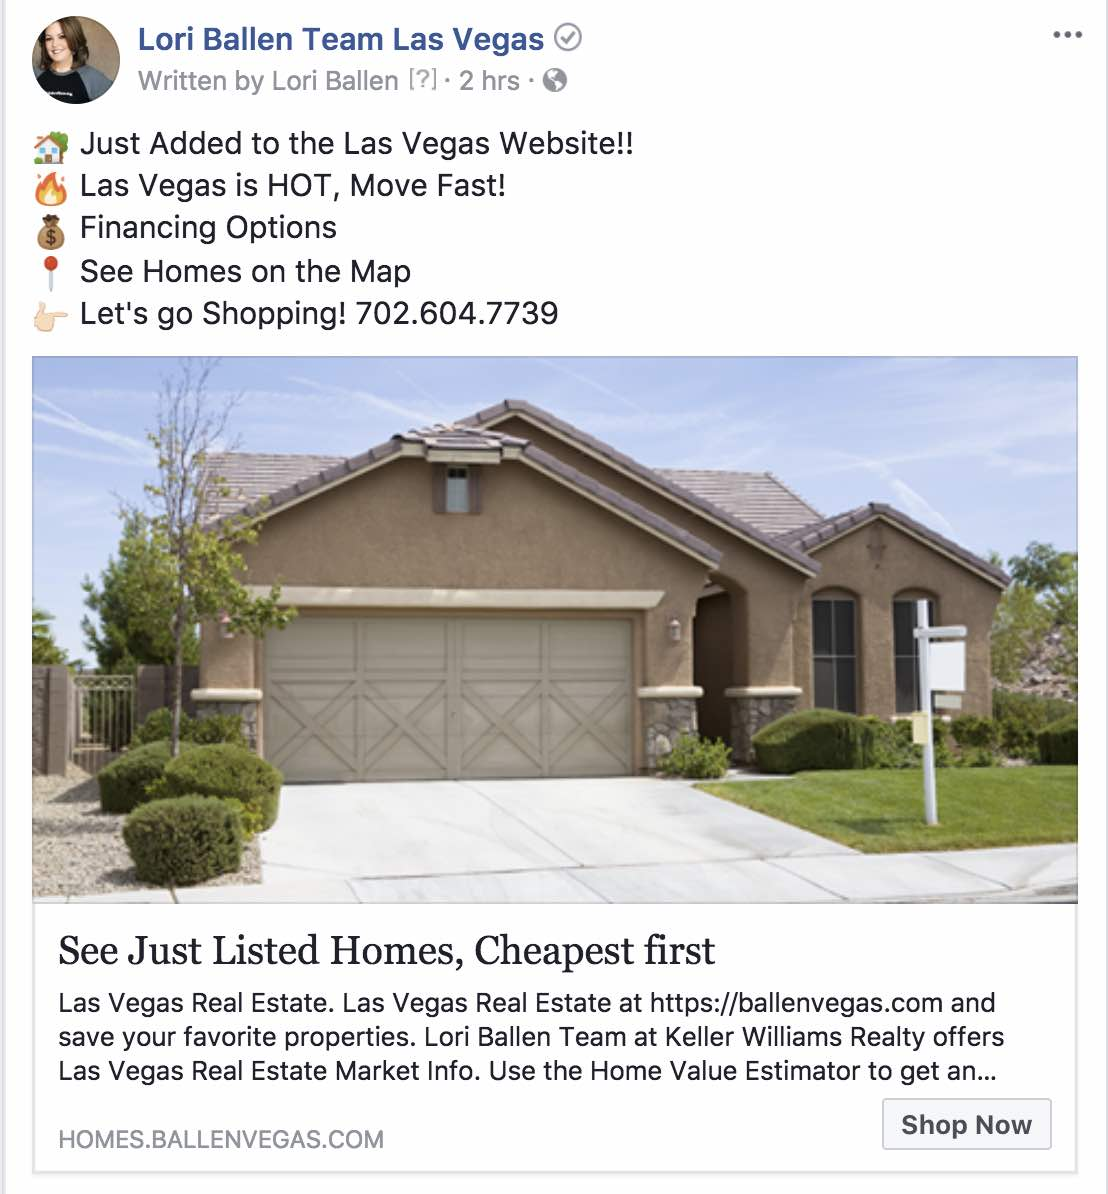 Sample real estate ad used for regargeting a facebook audience based on web traffic